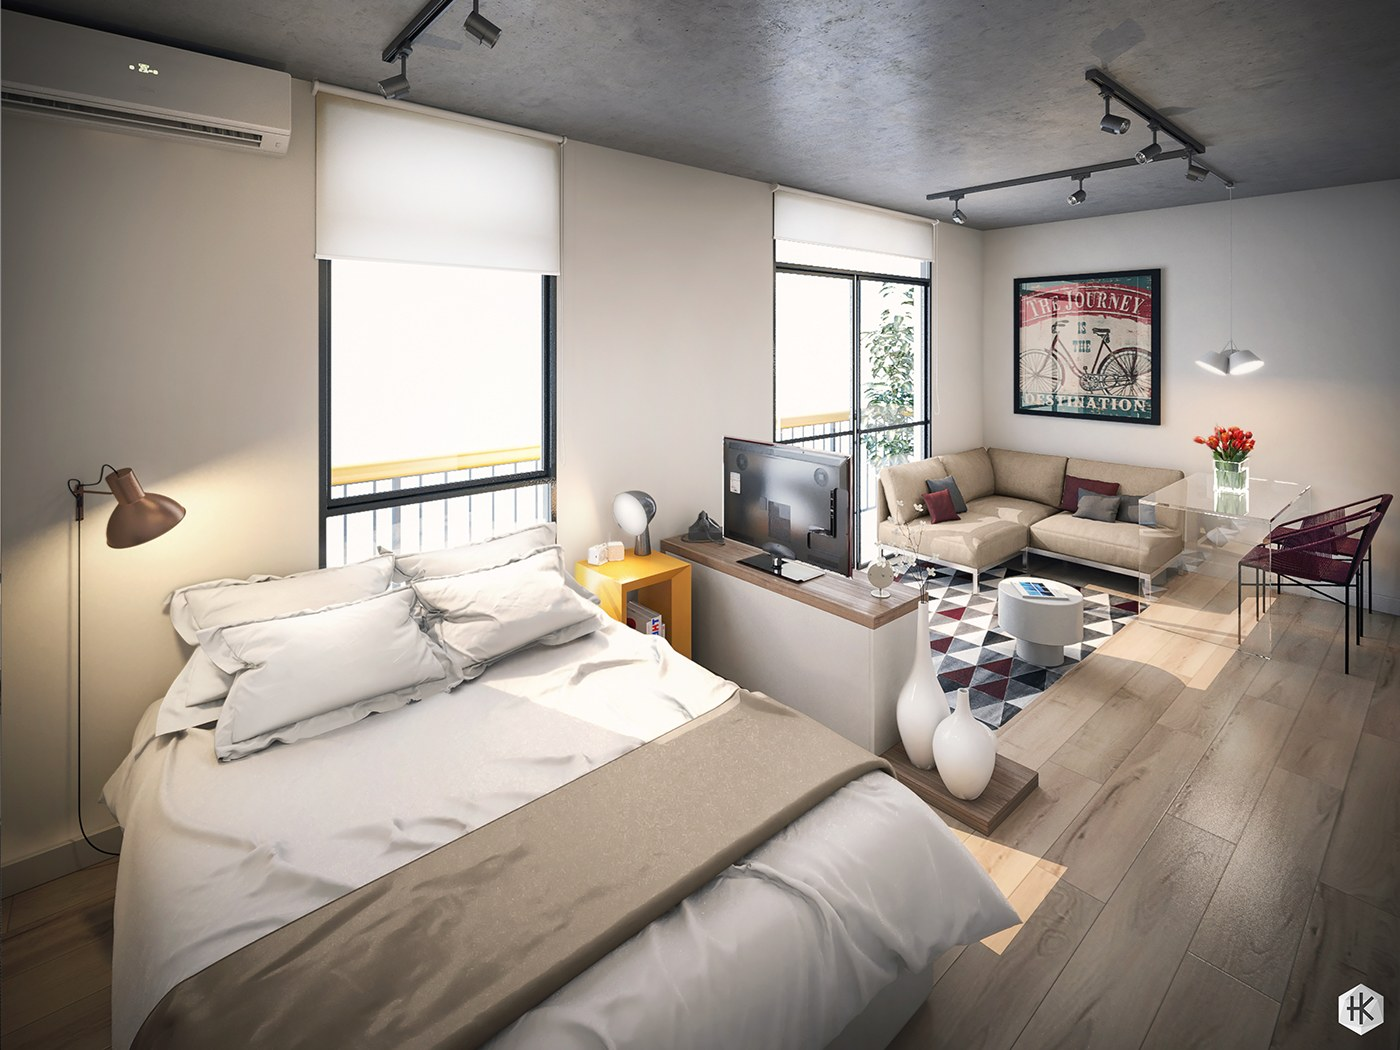 Apartment Design Layout 5 small studio apartments with beautiful design